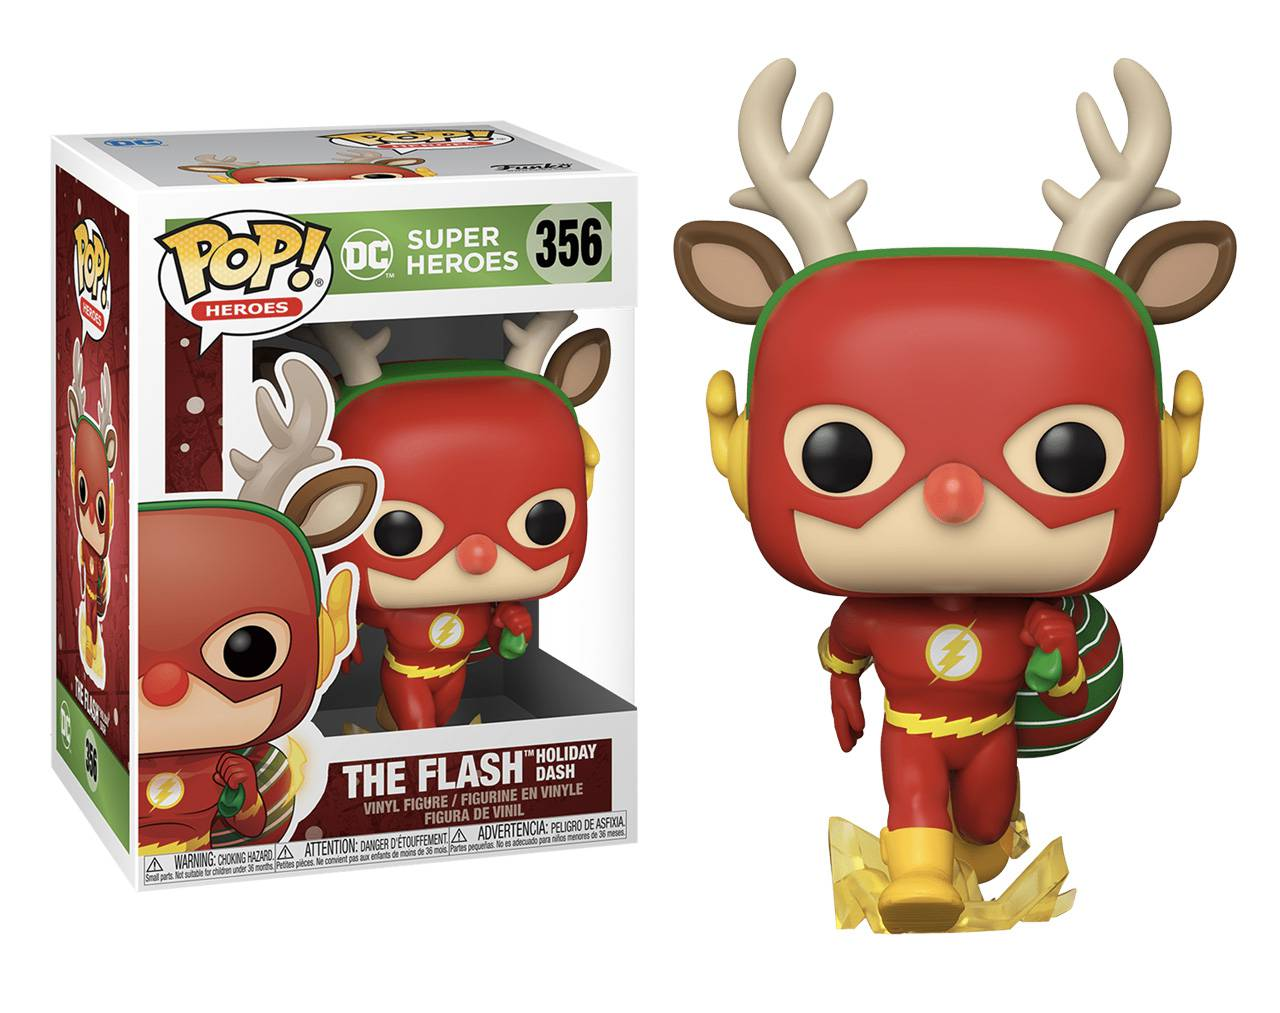 The Flash (Holiday Dash) Pop! Vinyl